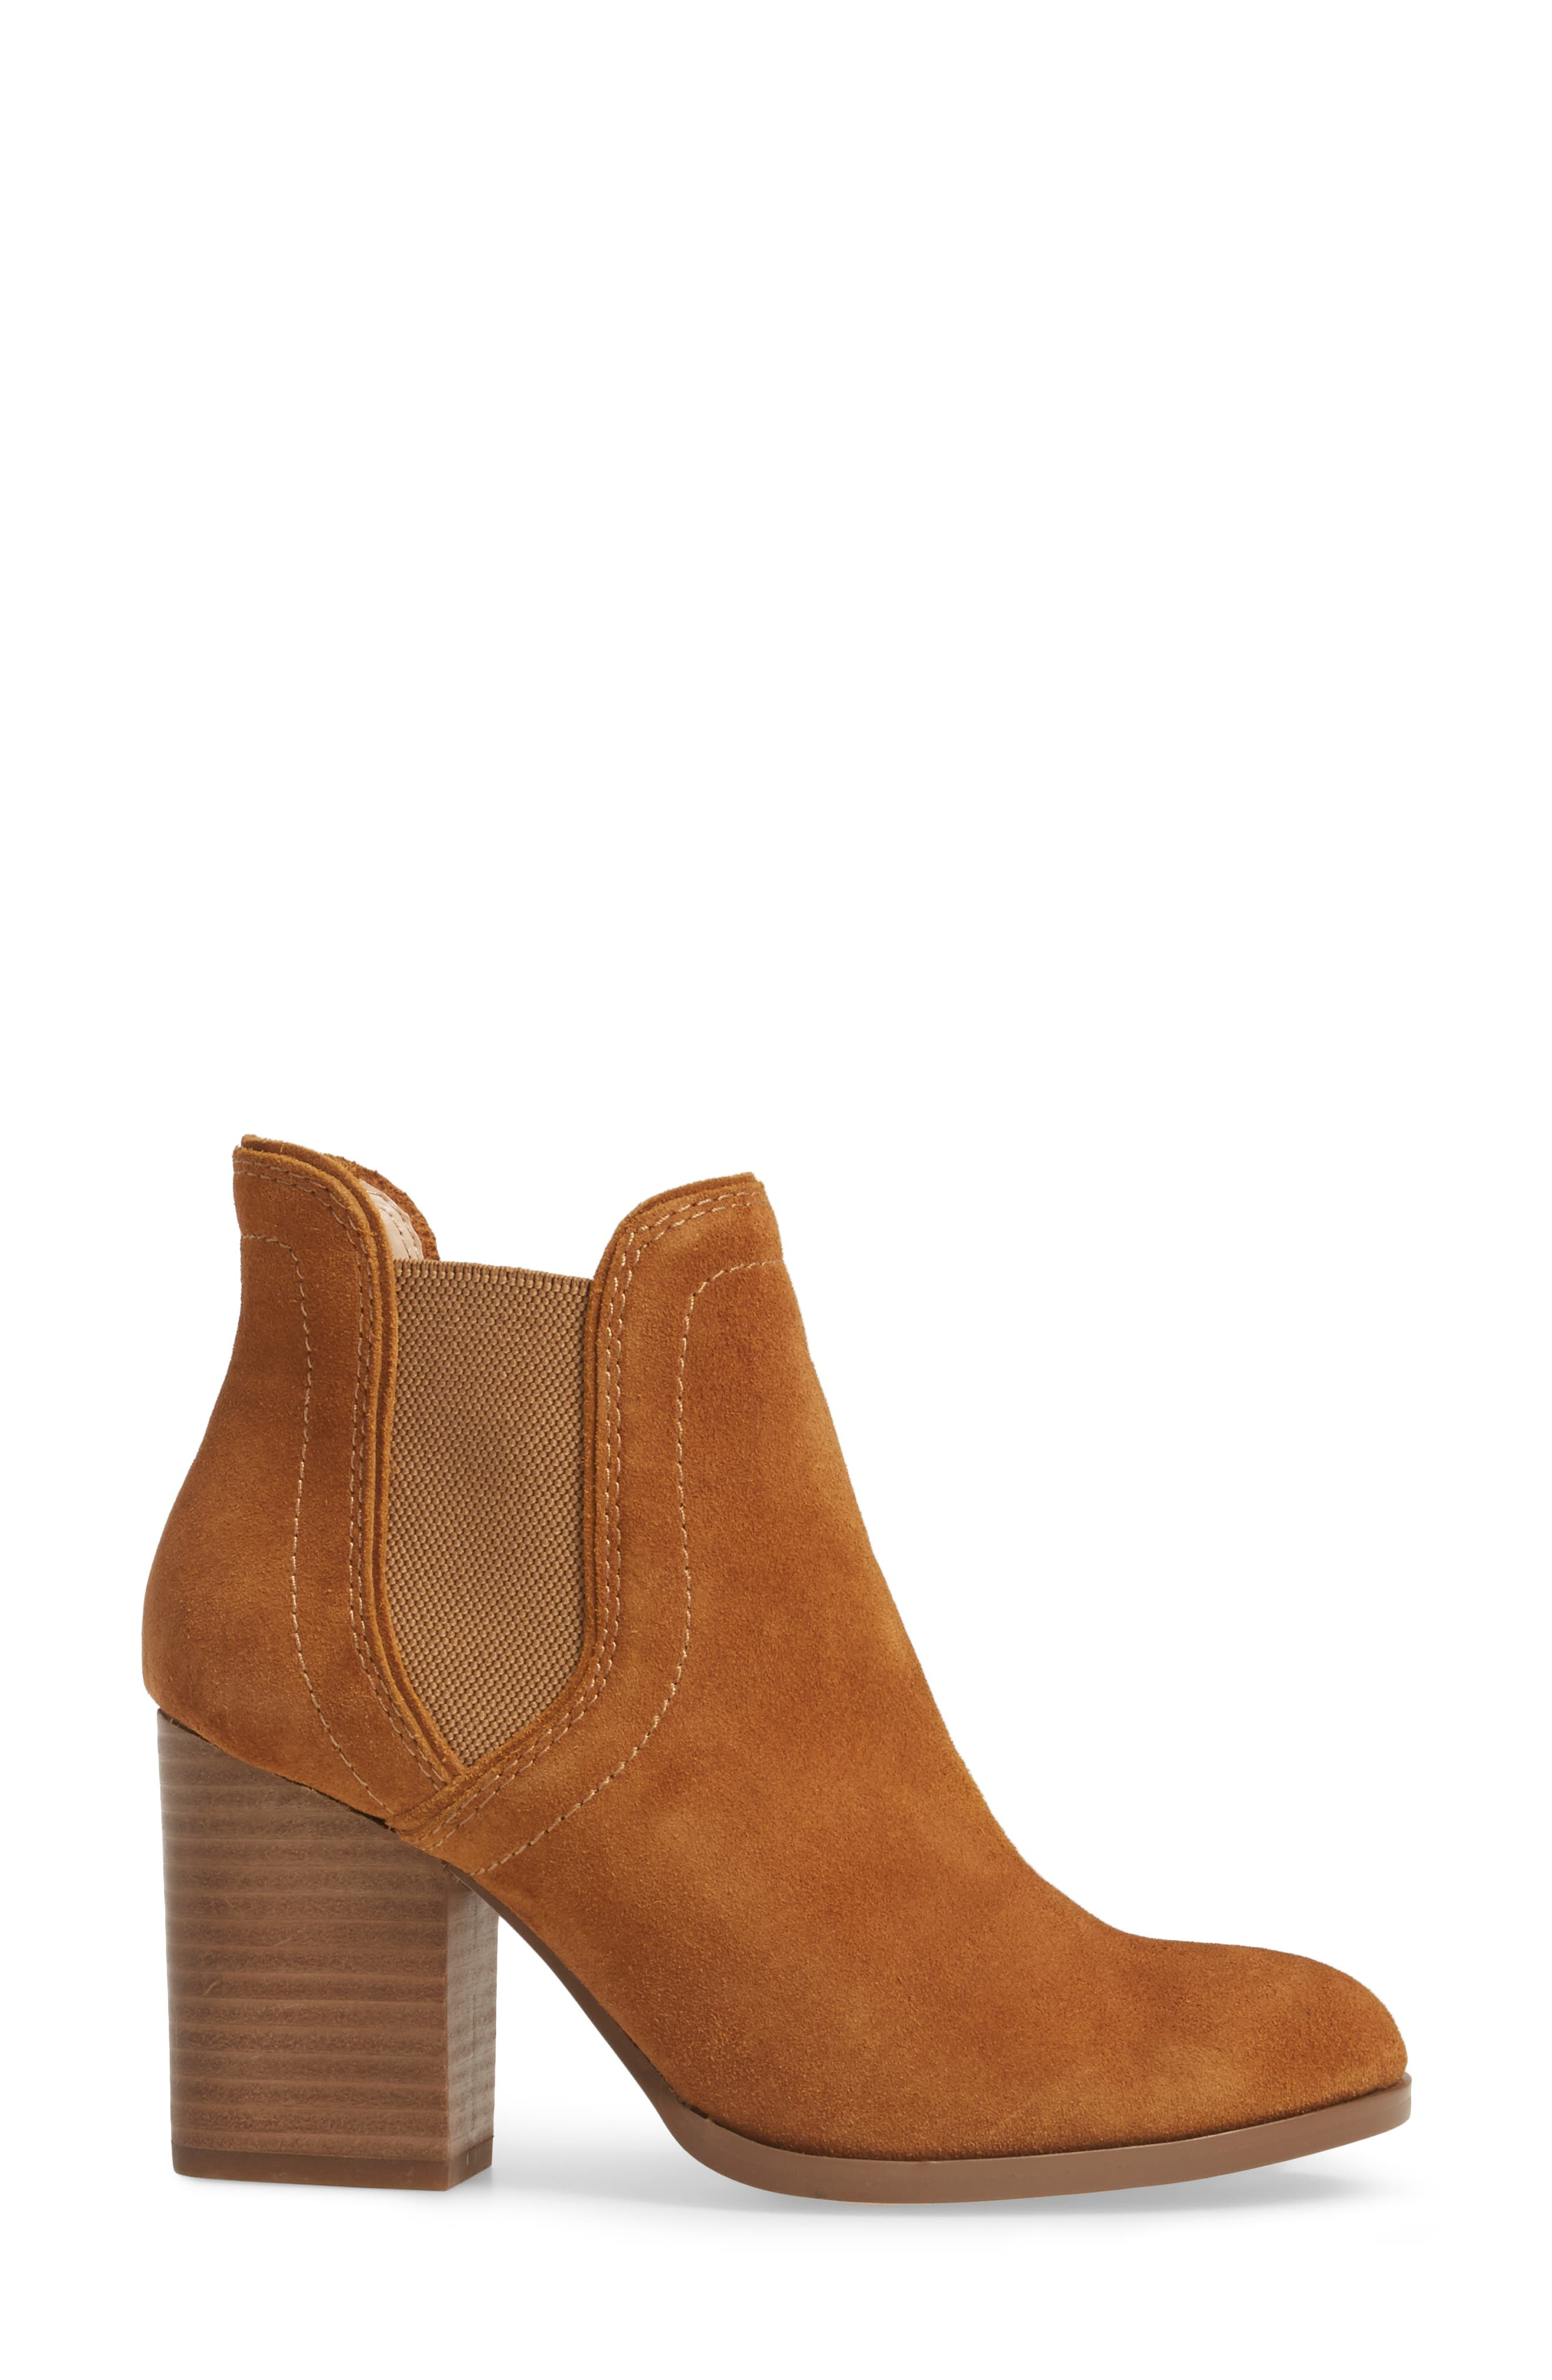 Alternate Image 3  - Sole Society Carrillo Bootie (Women)